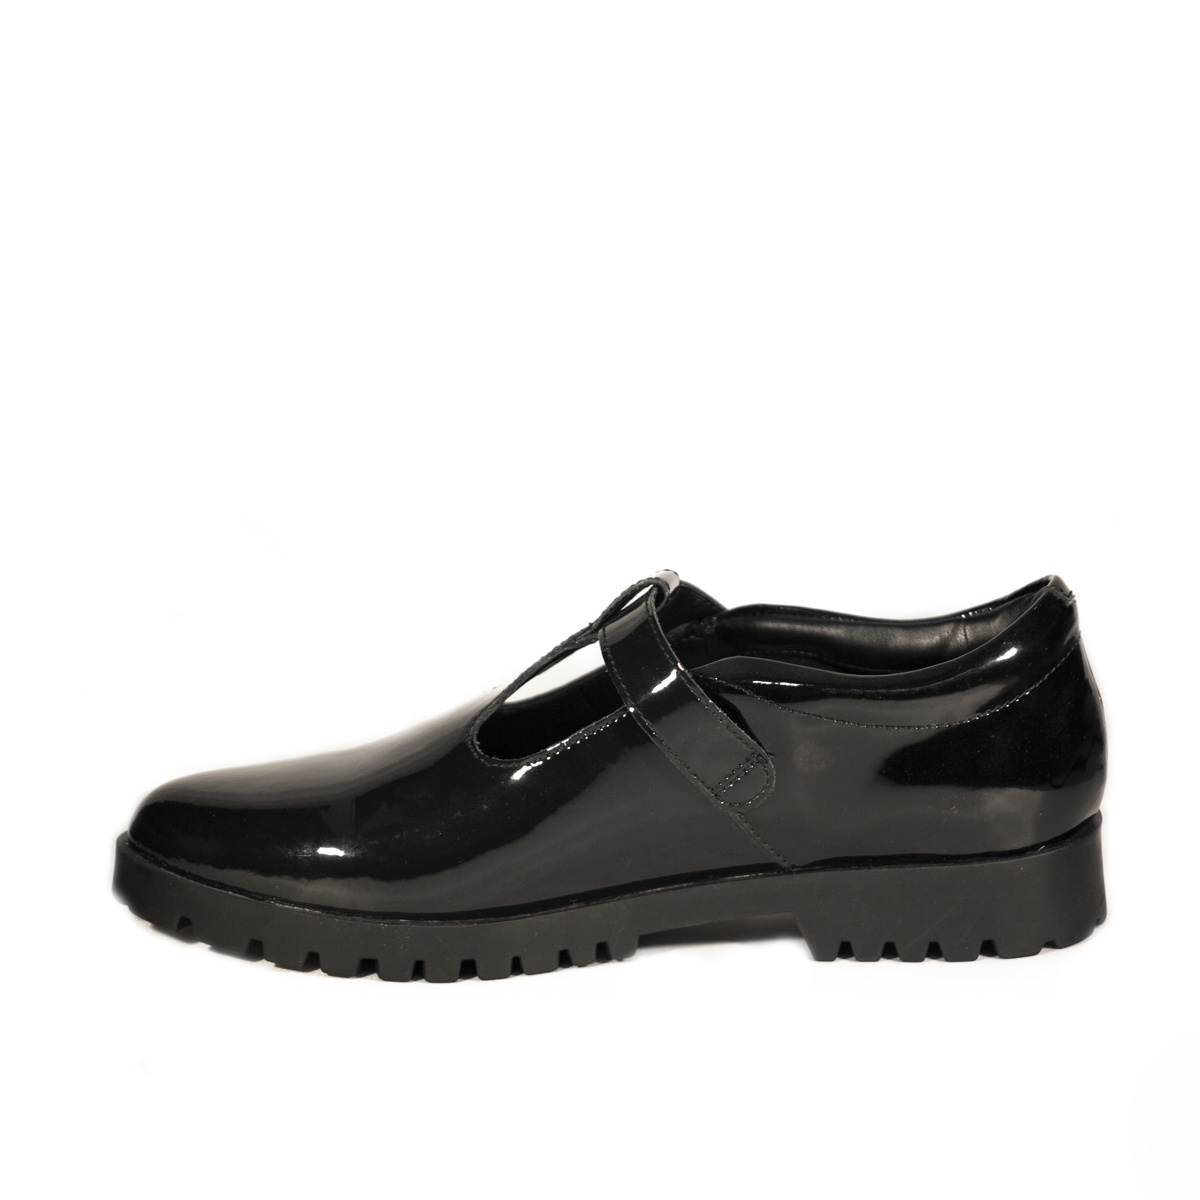 Clarks Agnes Patent Youth